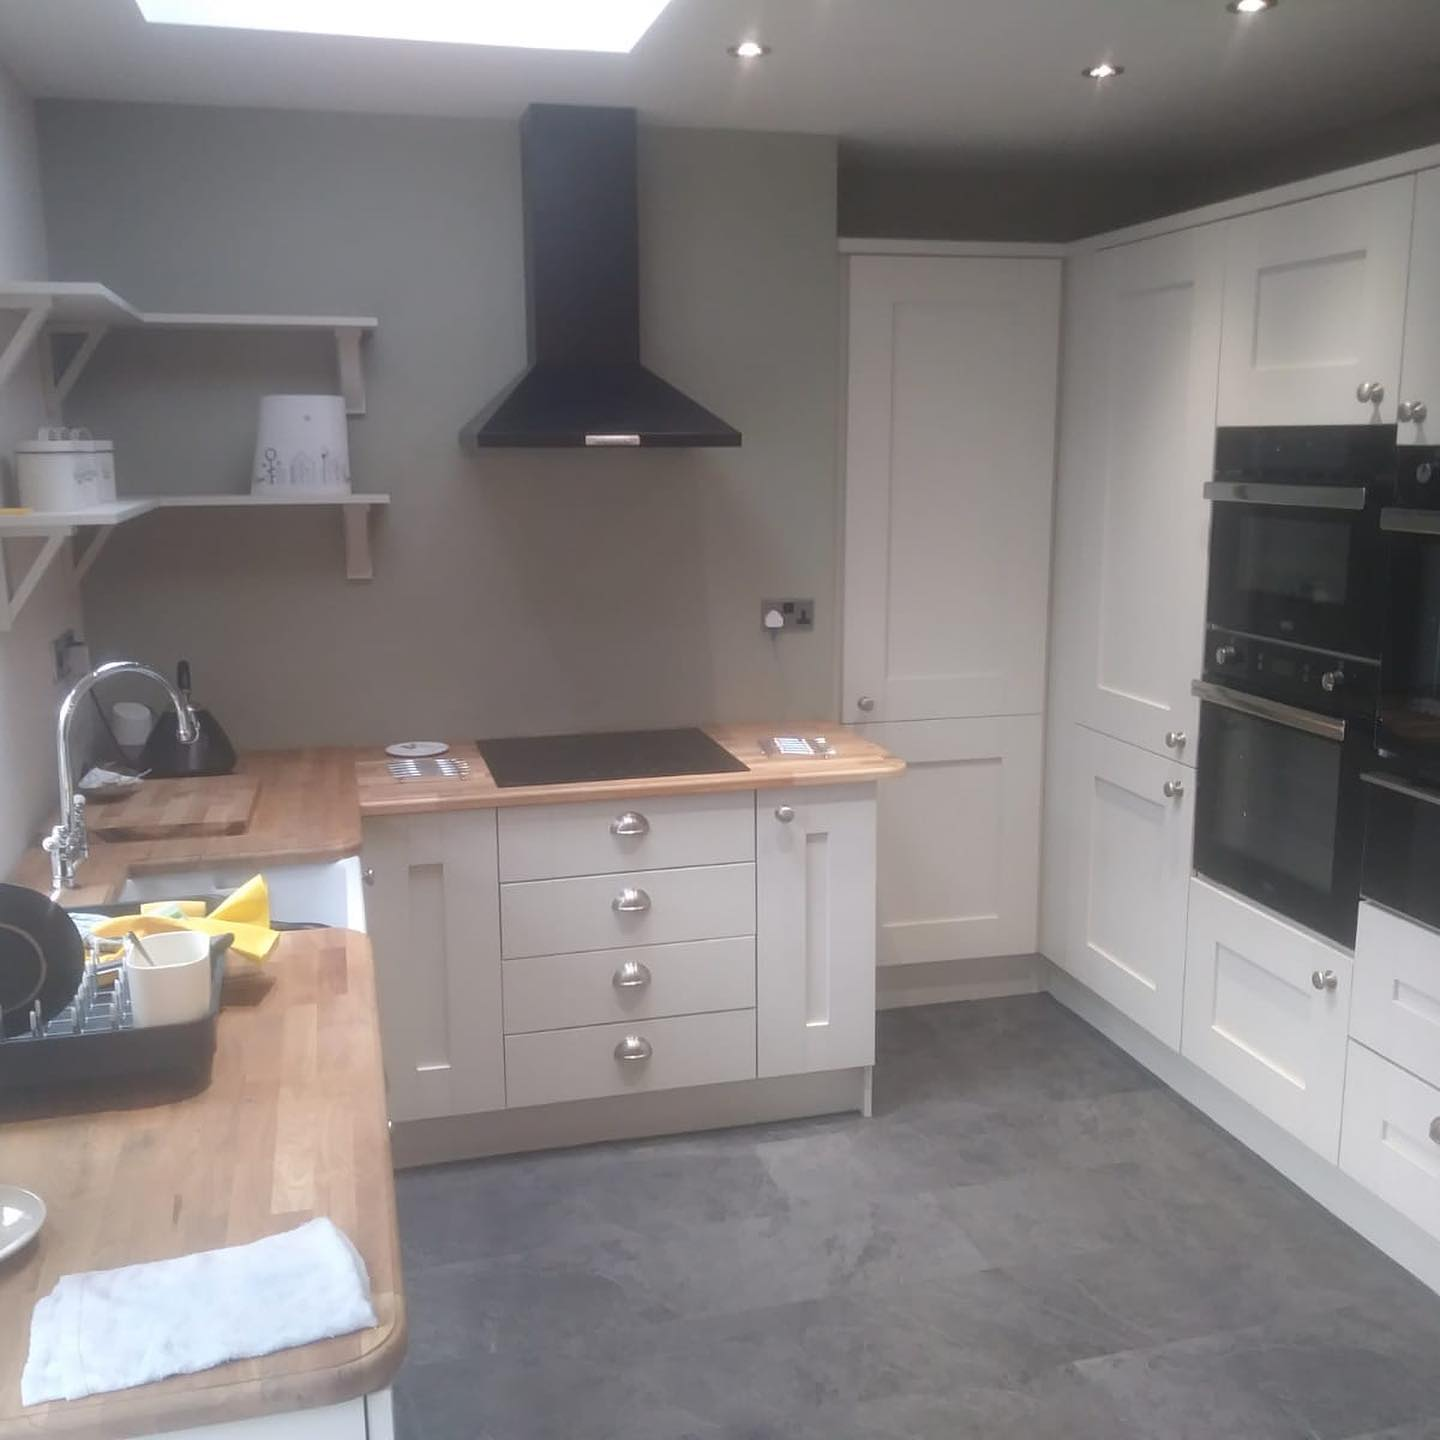 Kitchen renovation in Oldham